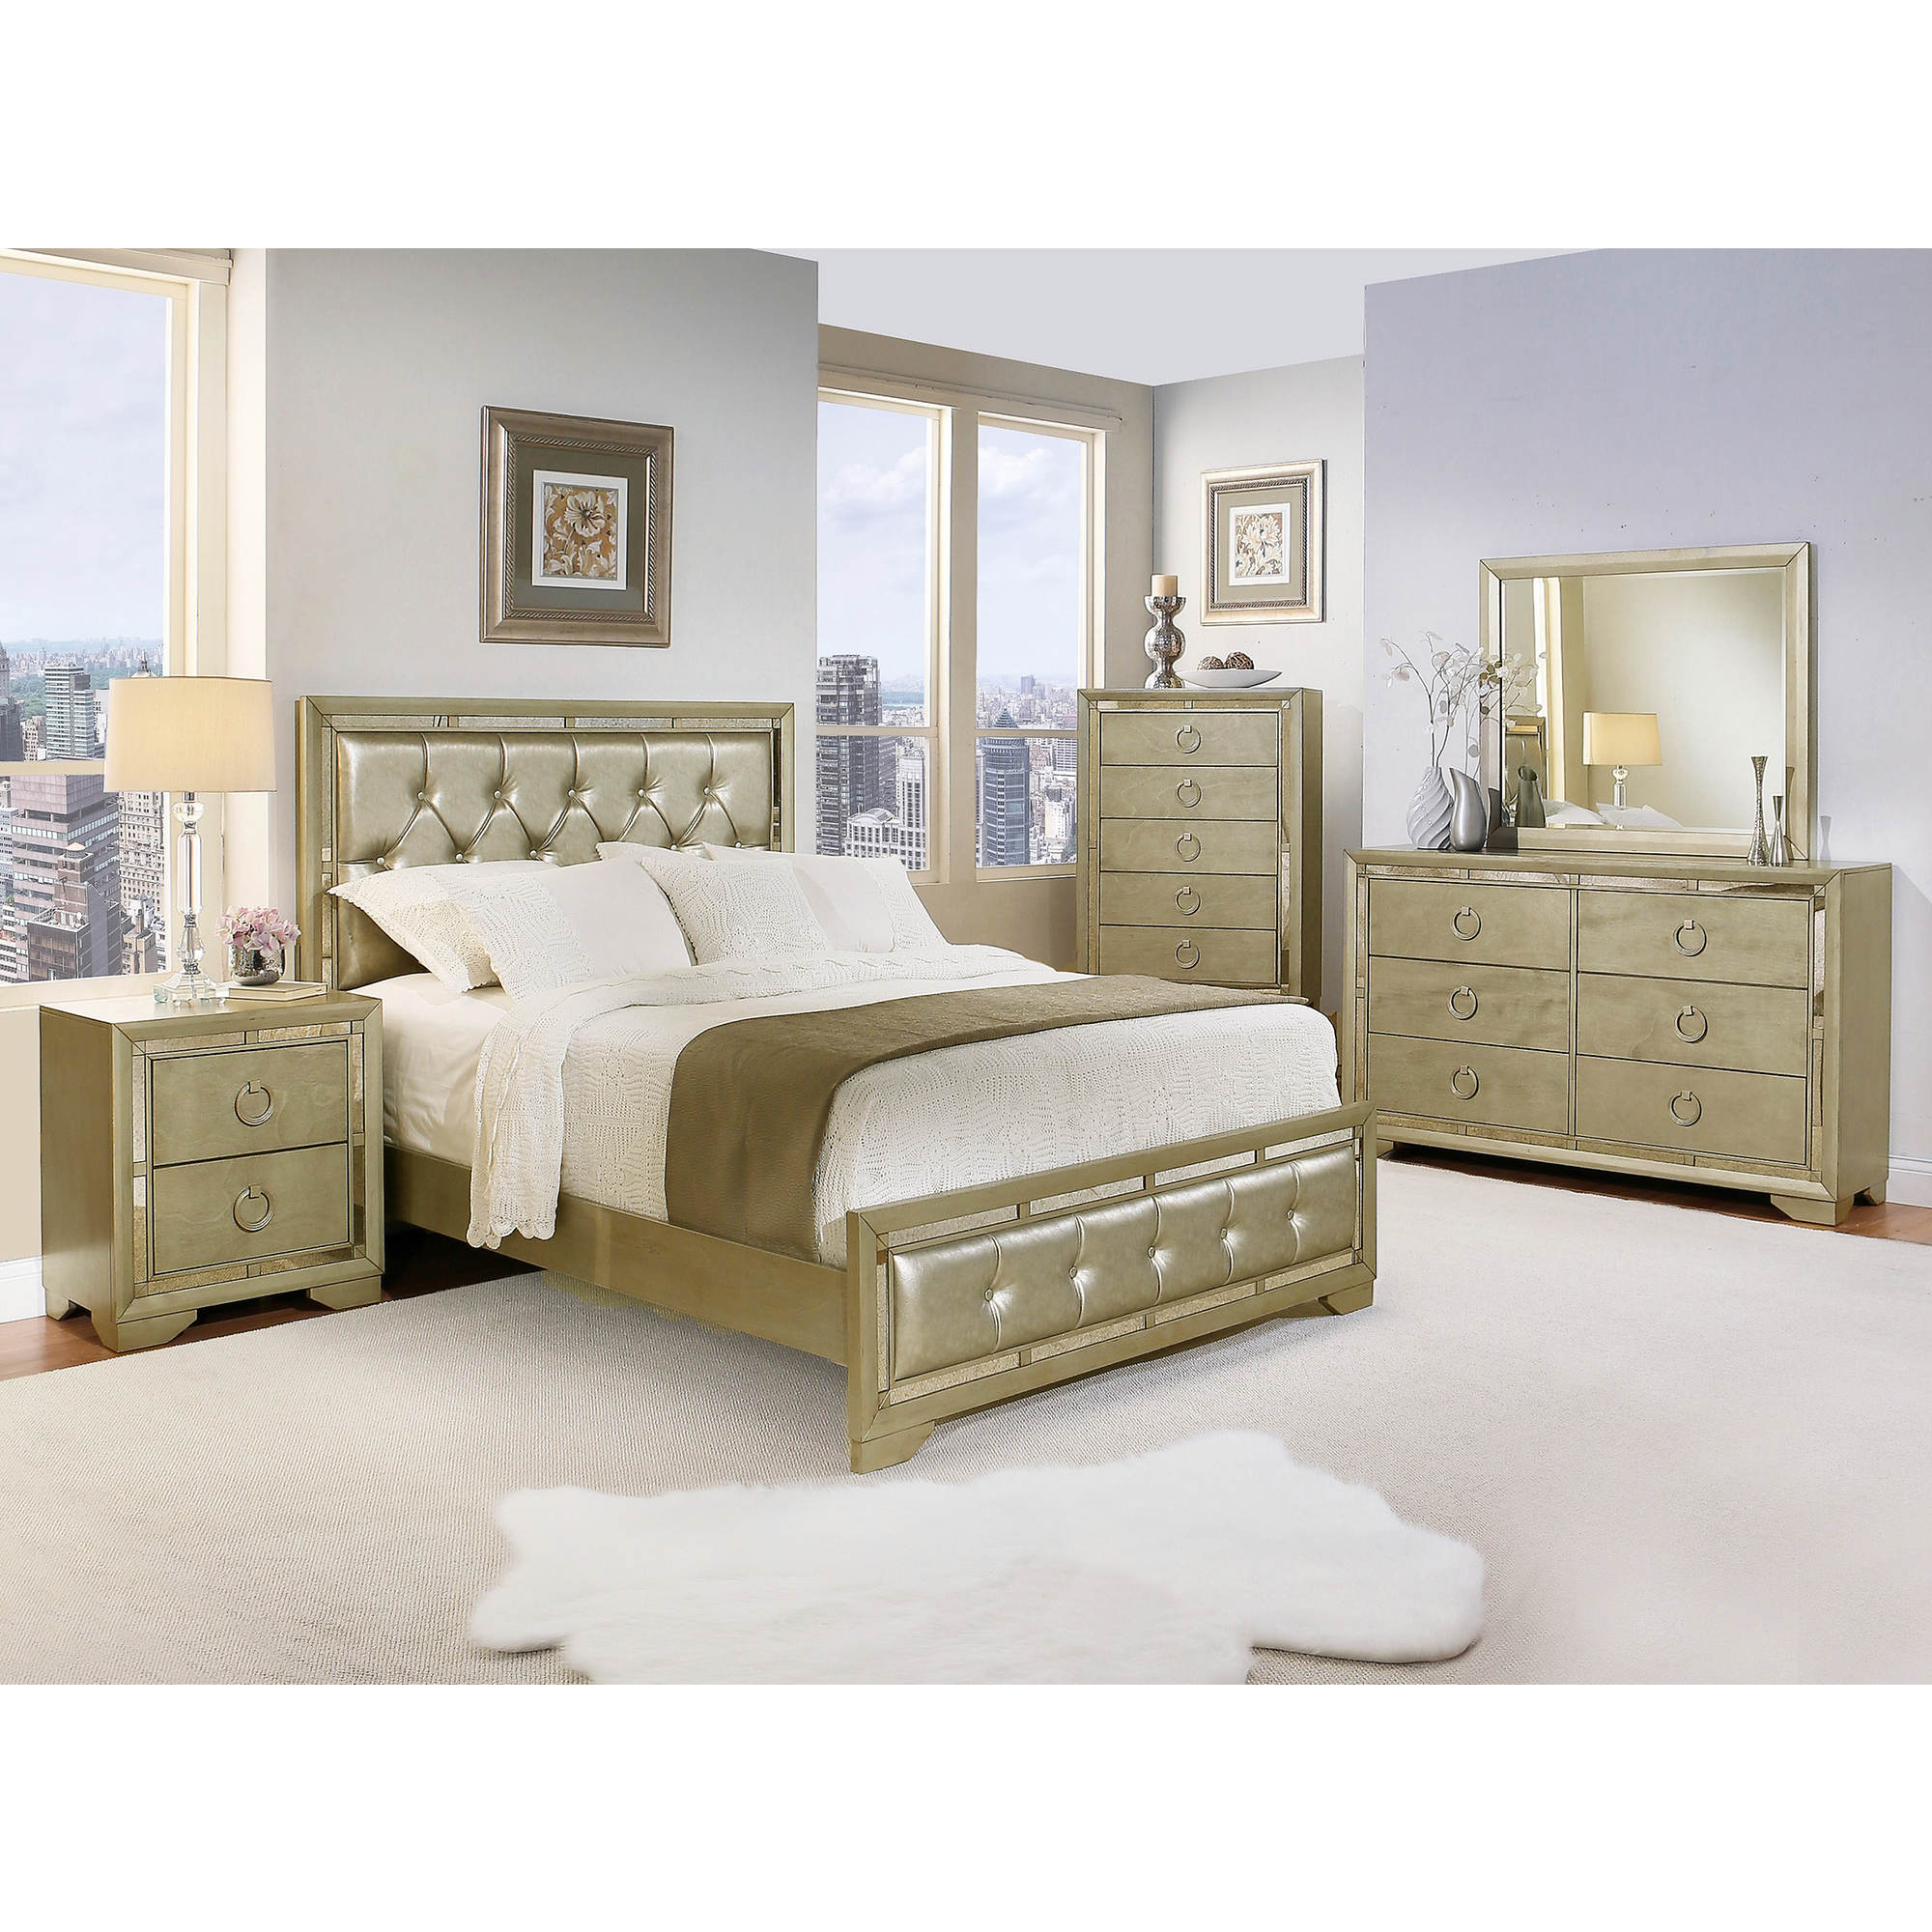 Abbyson Living Penelope Queen-Size 6-Pc. Mirrored Bedroom